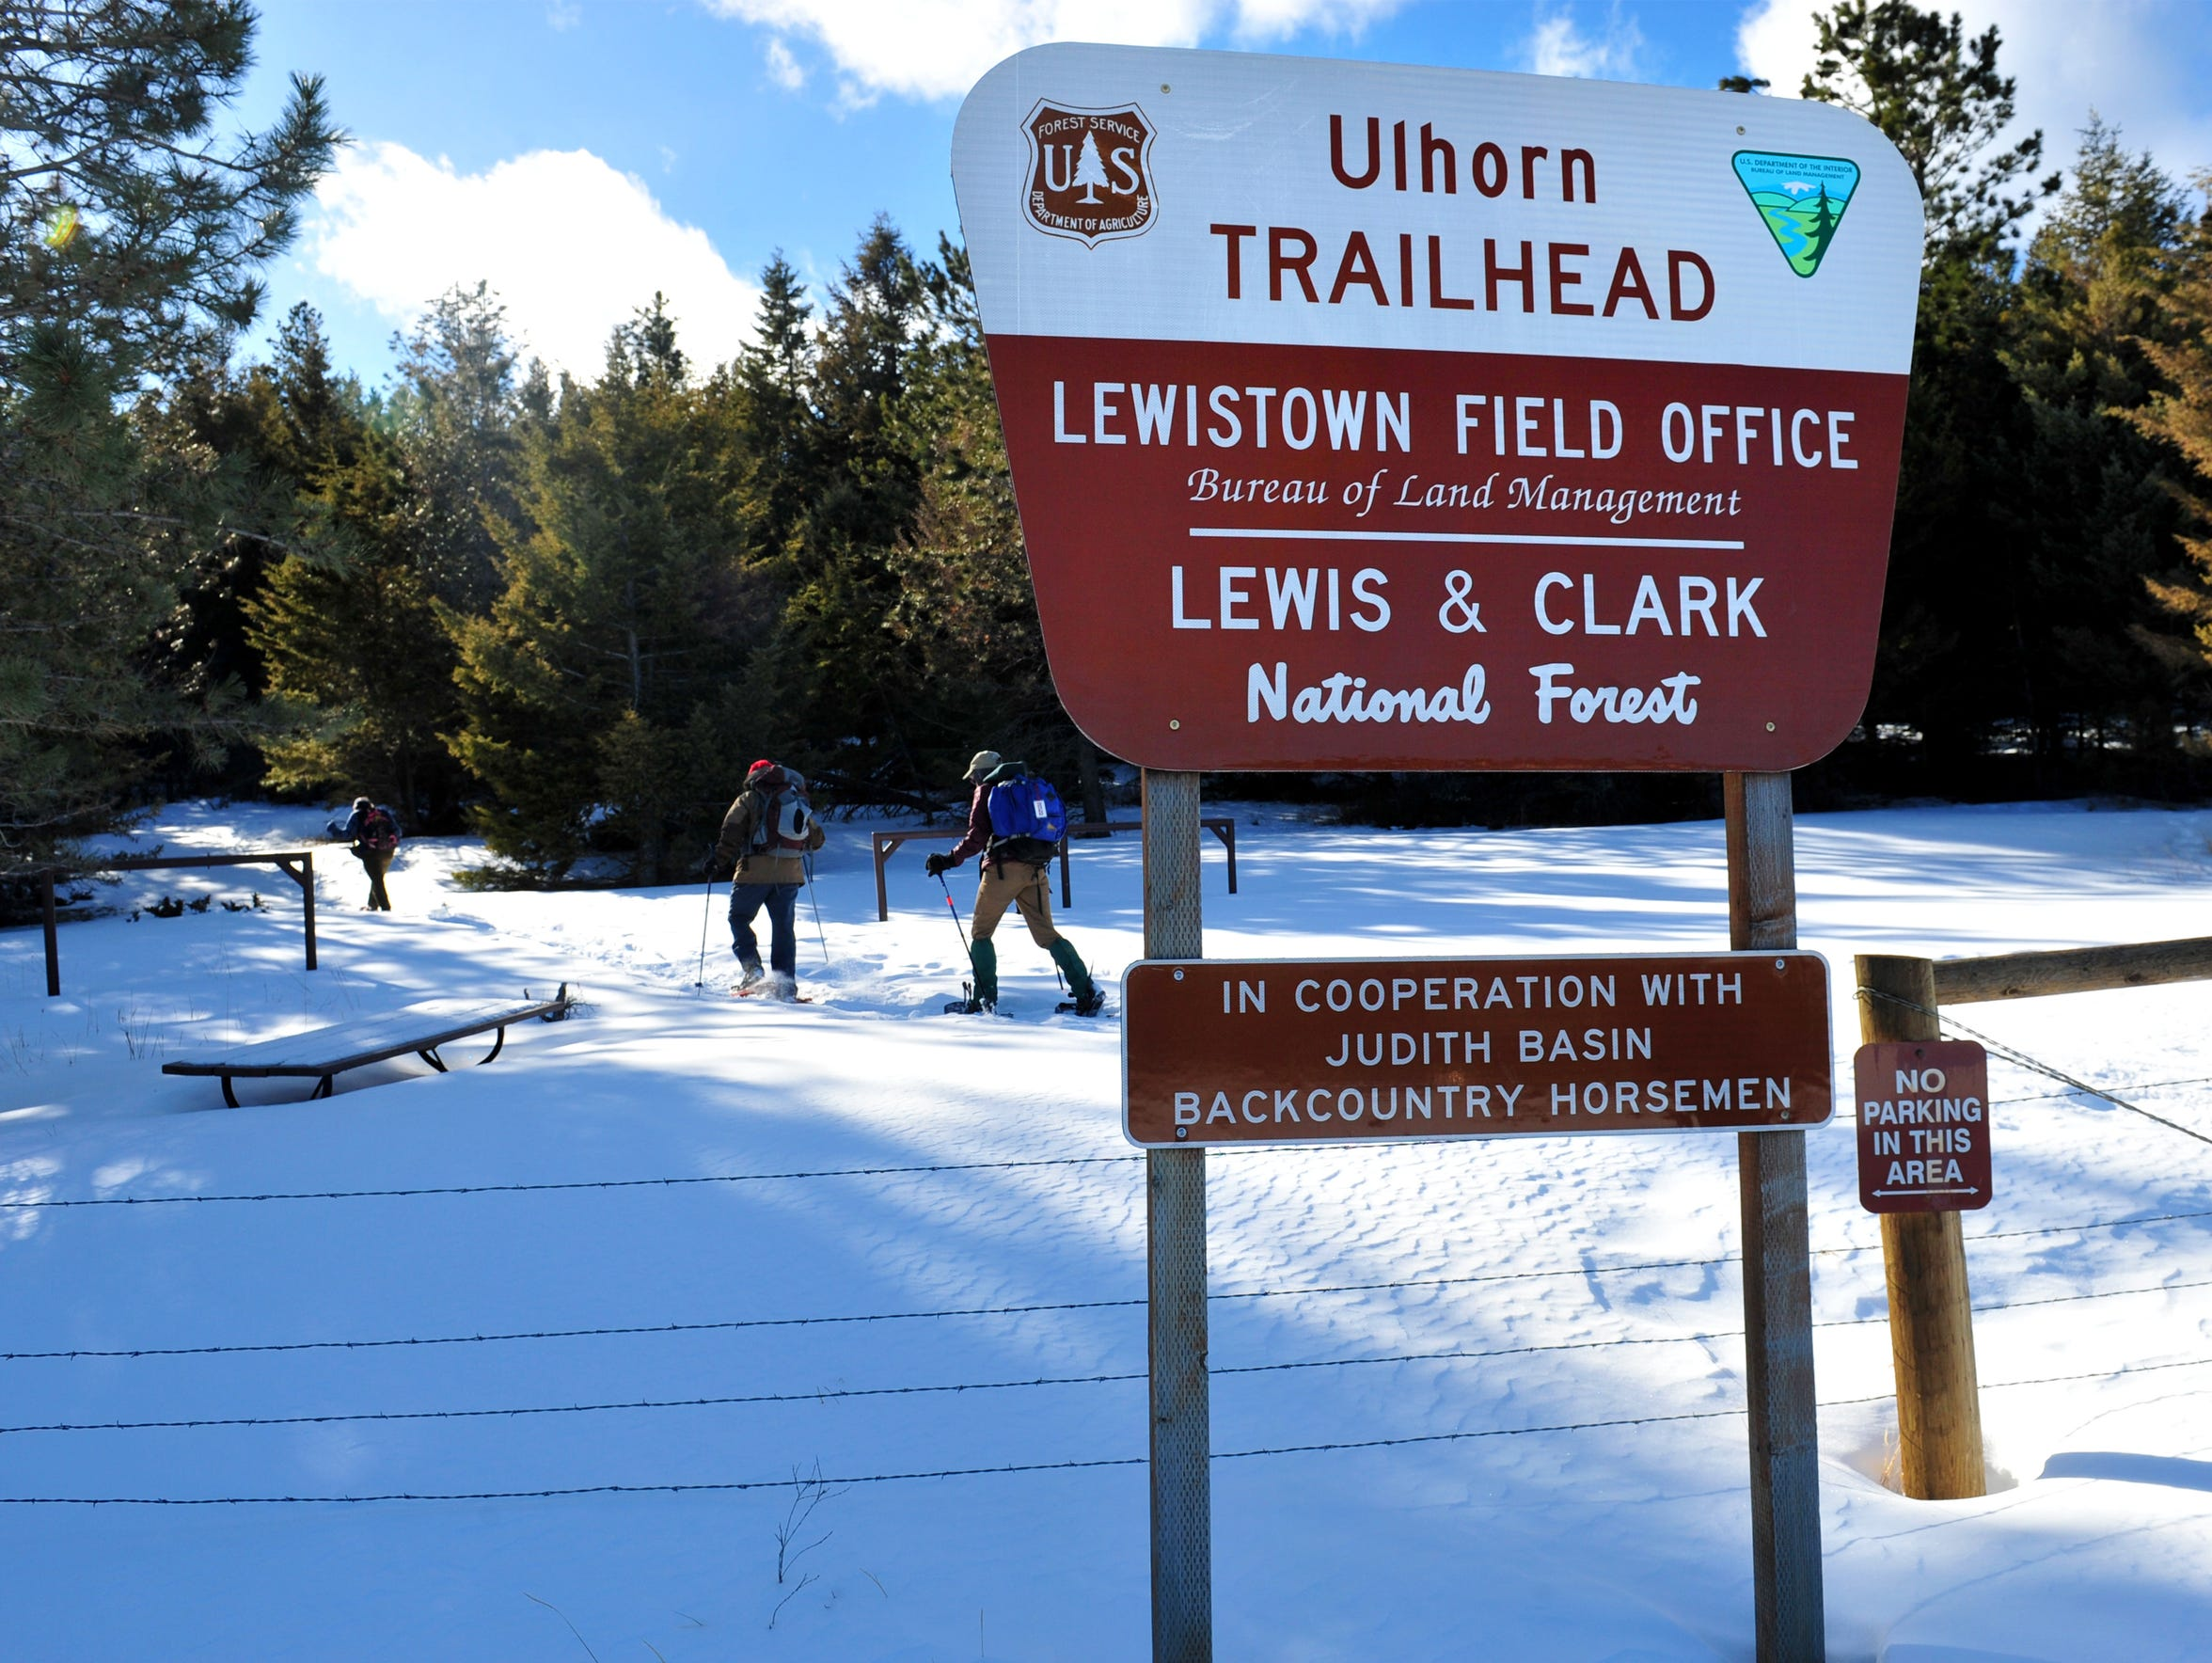 The Ulhorn trailhead in the Big Snowy Mountains is